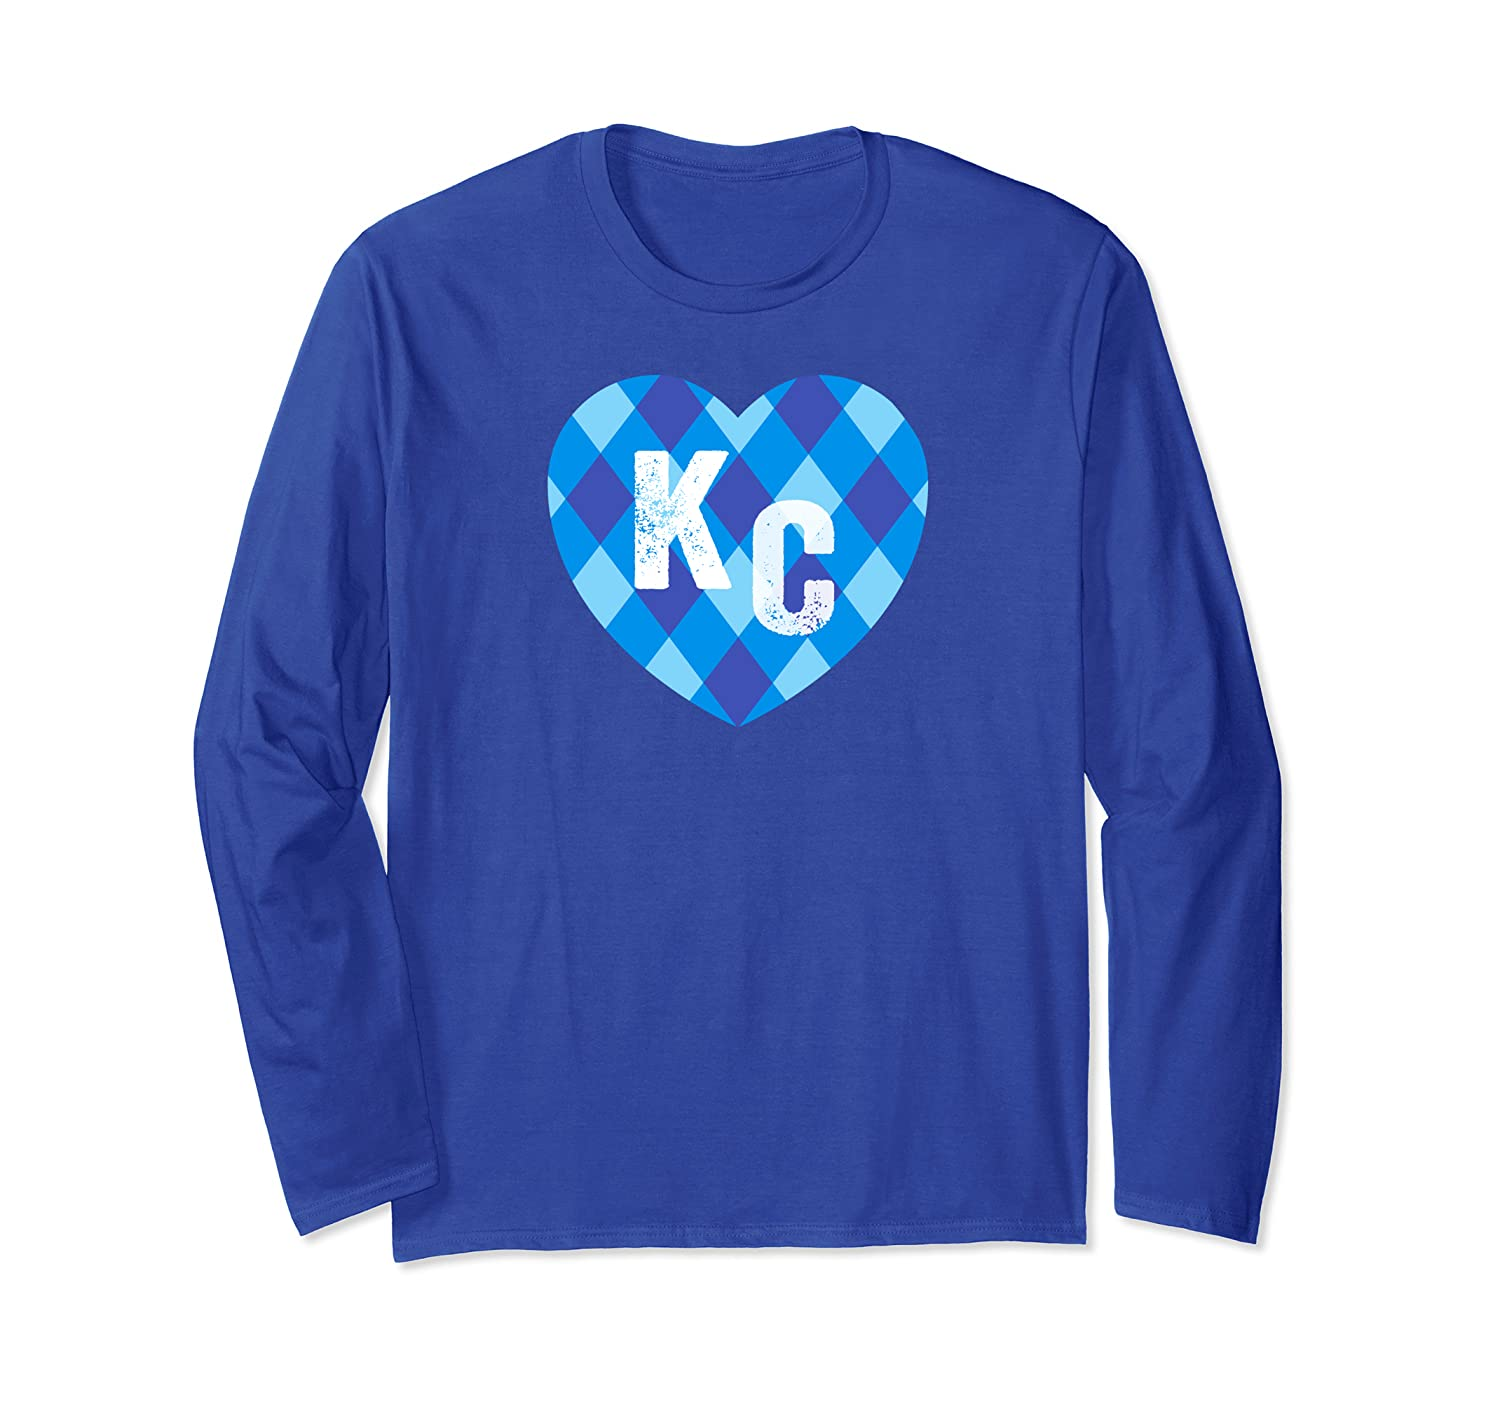 Heart Kansas City Royal Blue And Baby Blue Kc Hearts Shirts